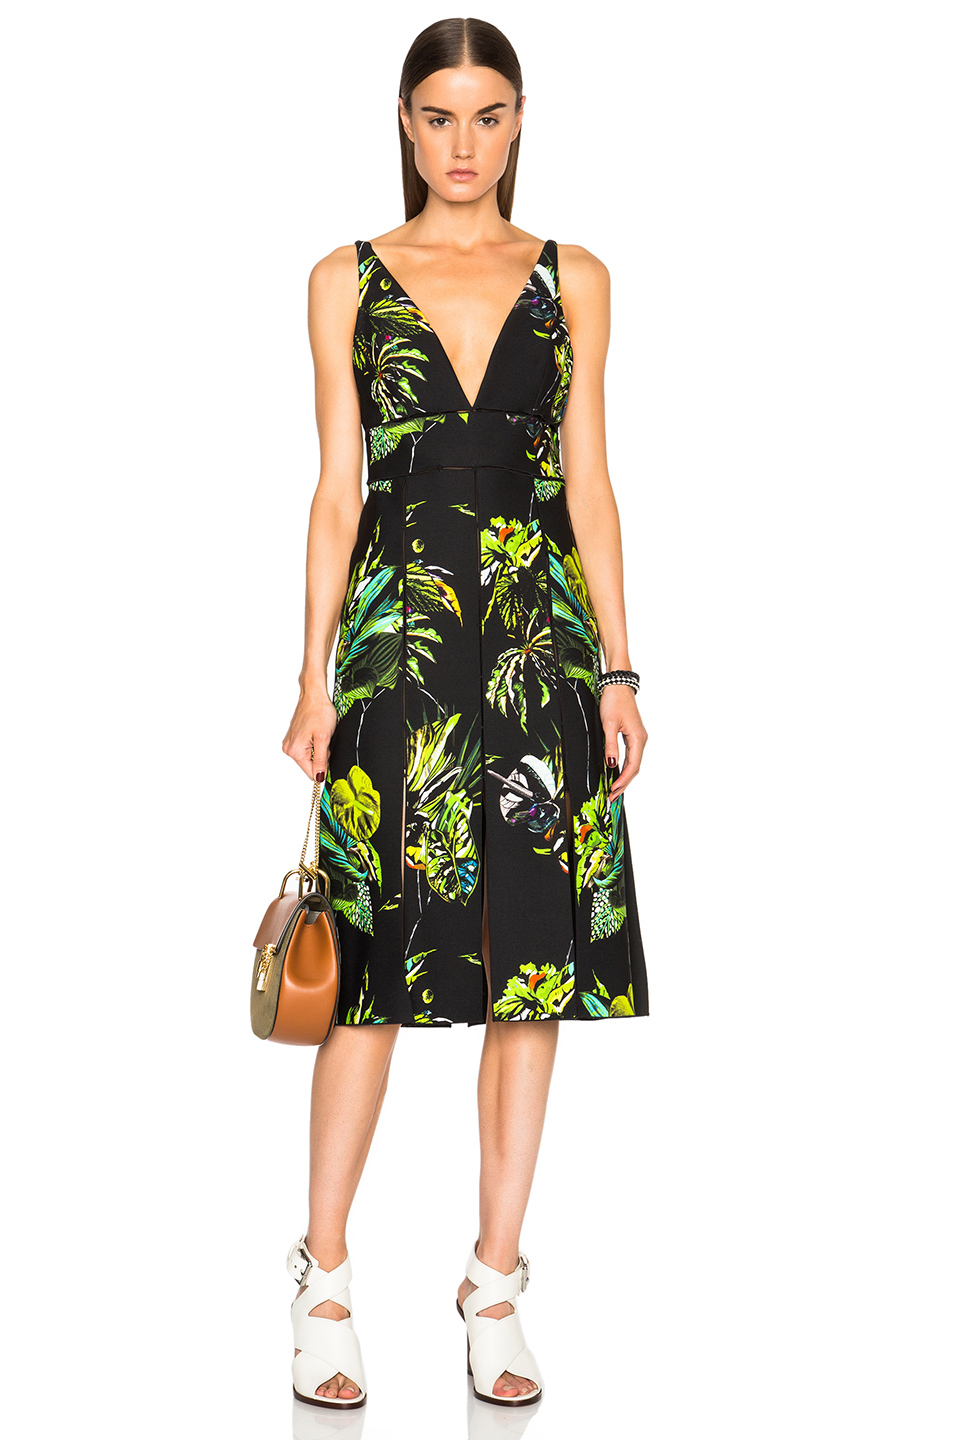 Proenza Schouler Printed Satin V Neck Long Dress with Slits in Black,Floral,Green